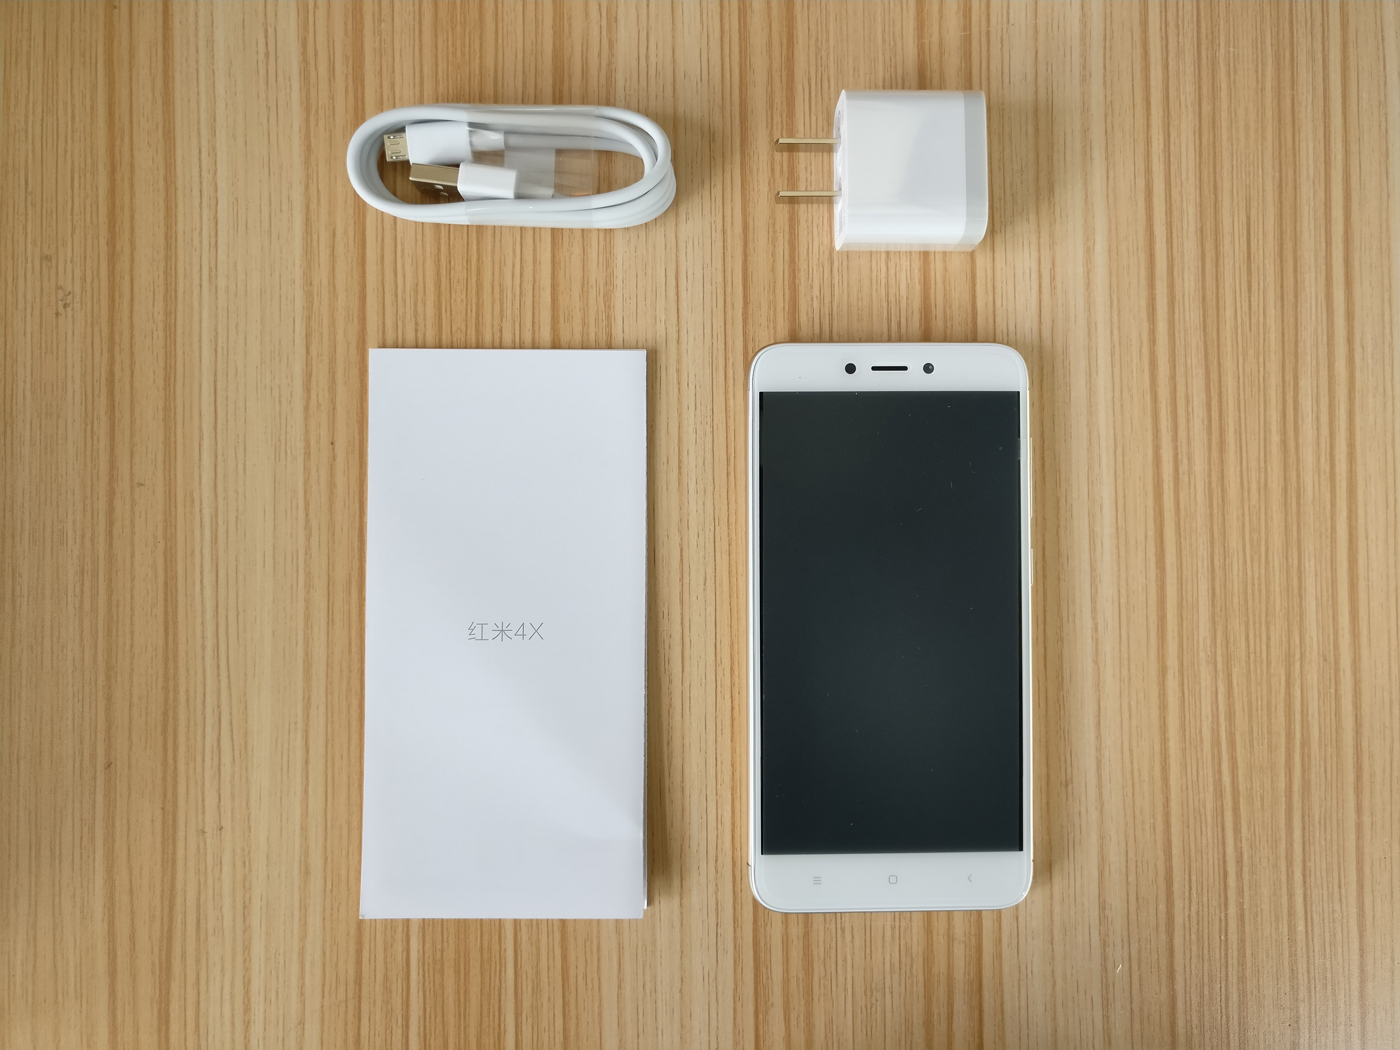 To2ccom Blog Xiaomi Redmi4x Real Life Images Unboxing Pictures Redmi 3x Ram 2 32gb The Details Of Being Photographed Colorchampagne Gold 2gb Rom16gb